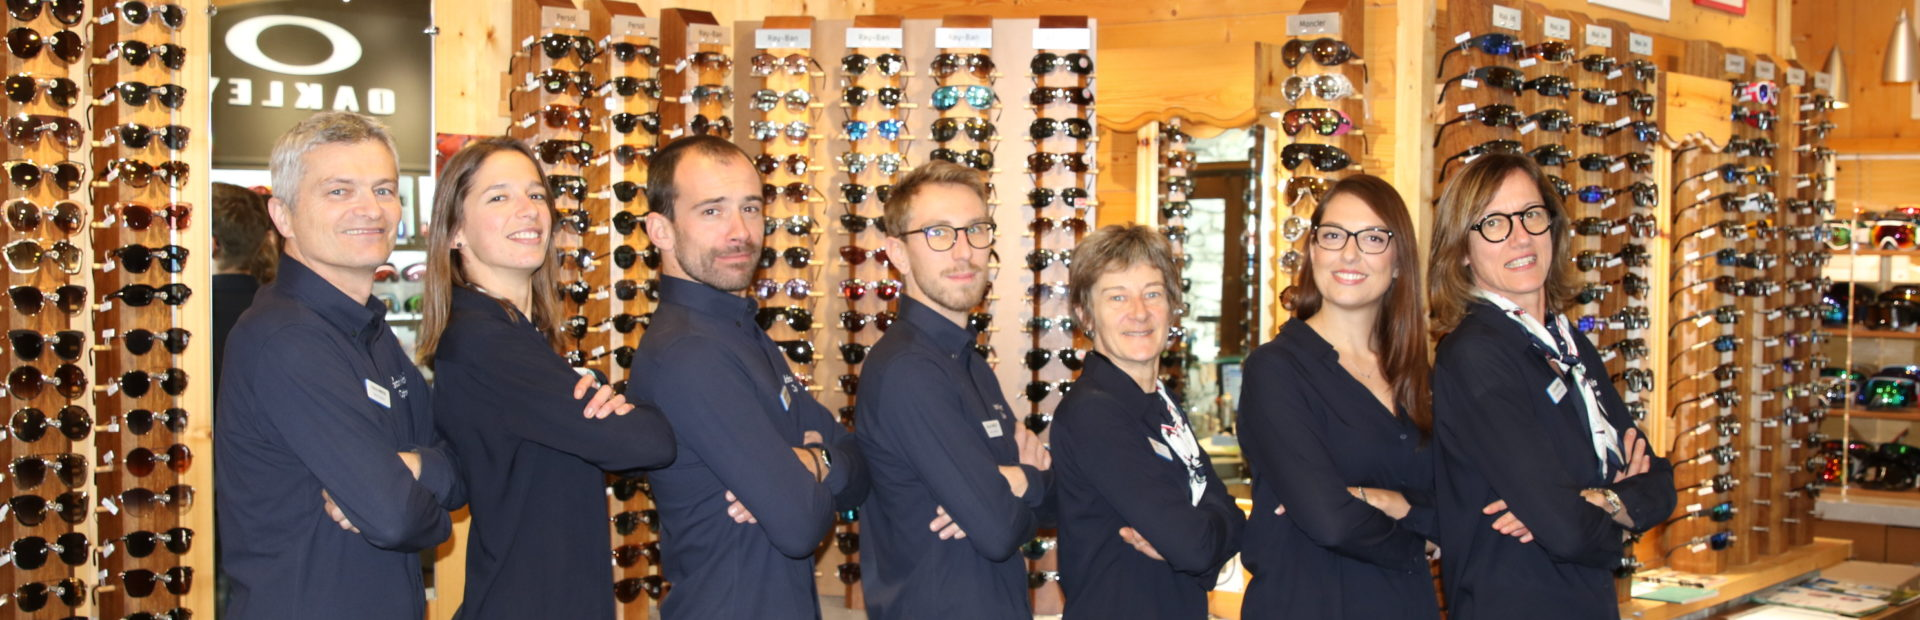 Maison Martin Opticiens